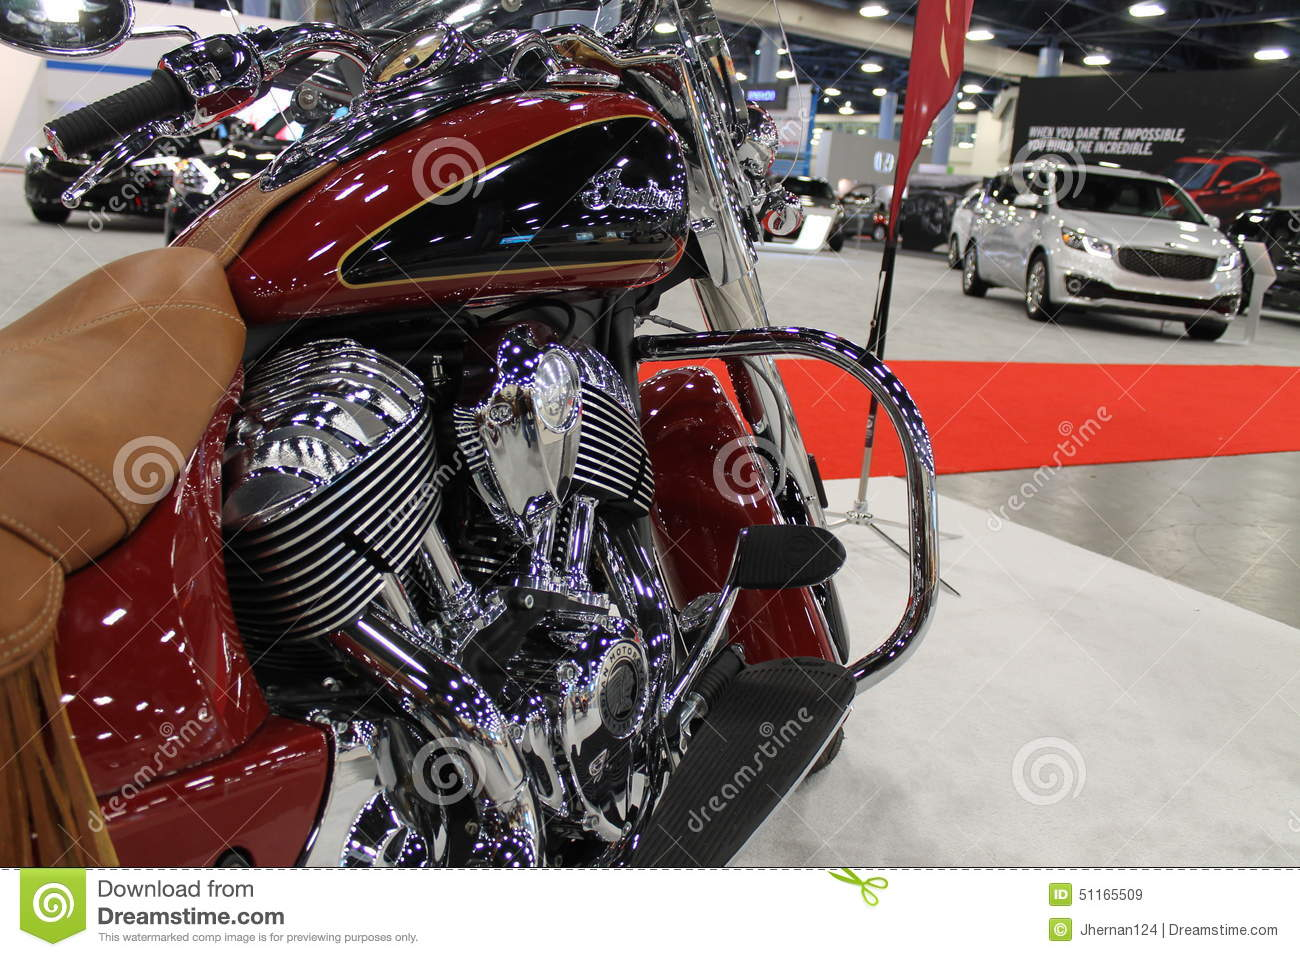 New American Motorcycle Editorial Stock Image Image Of Fuel 51165509